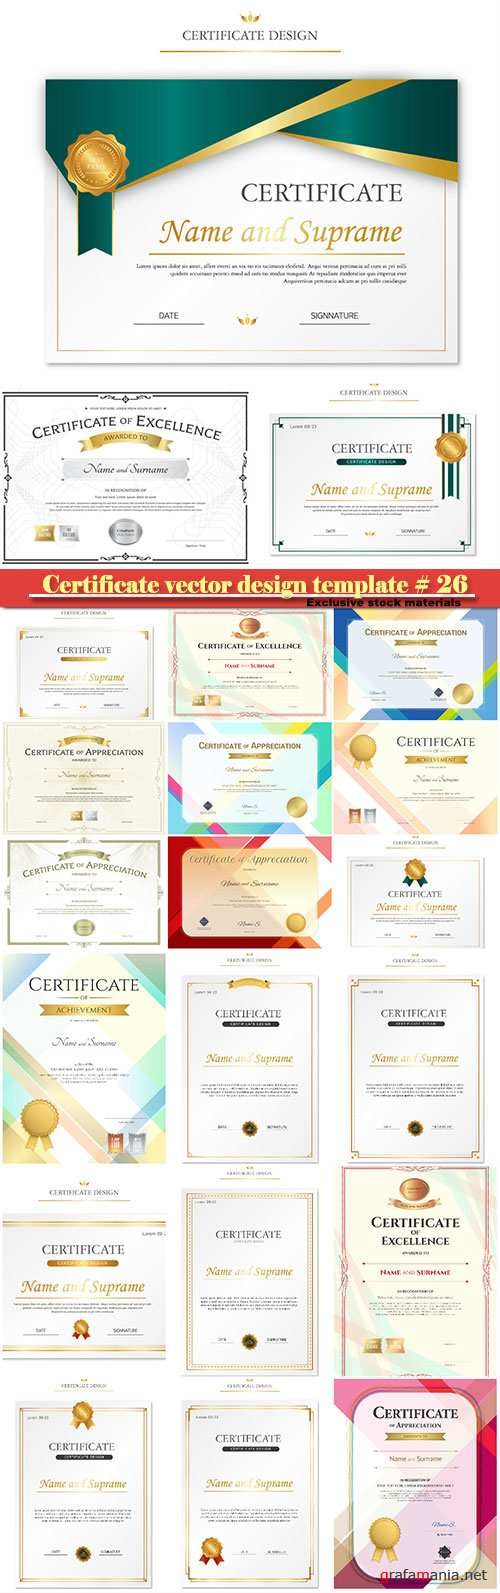 Certificate and vector diploma design template # 26